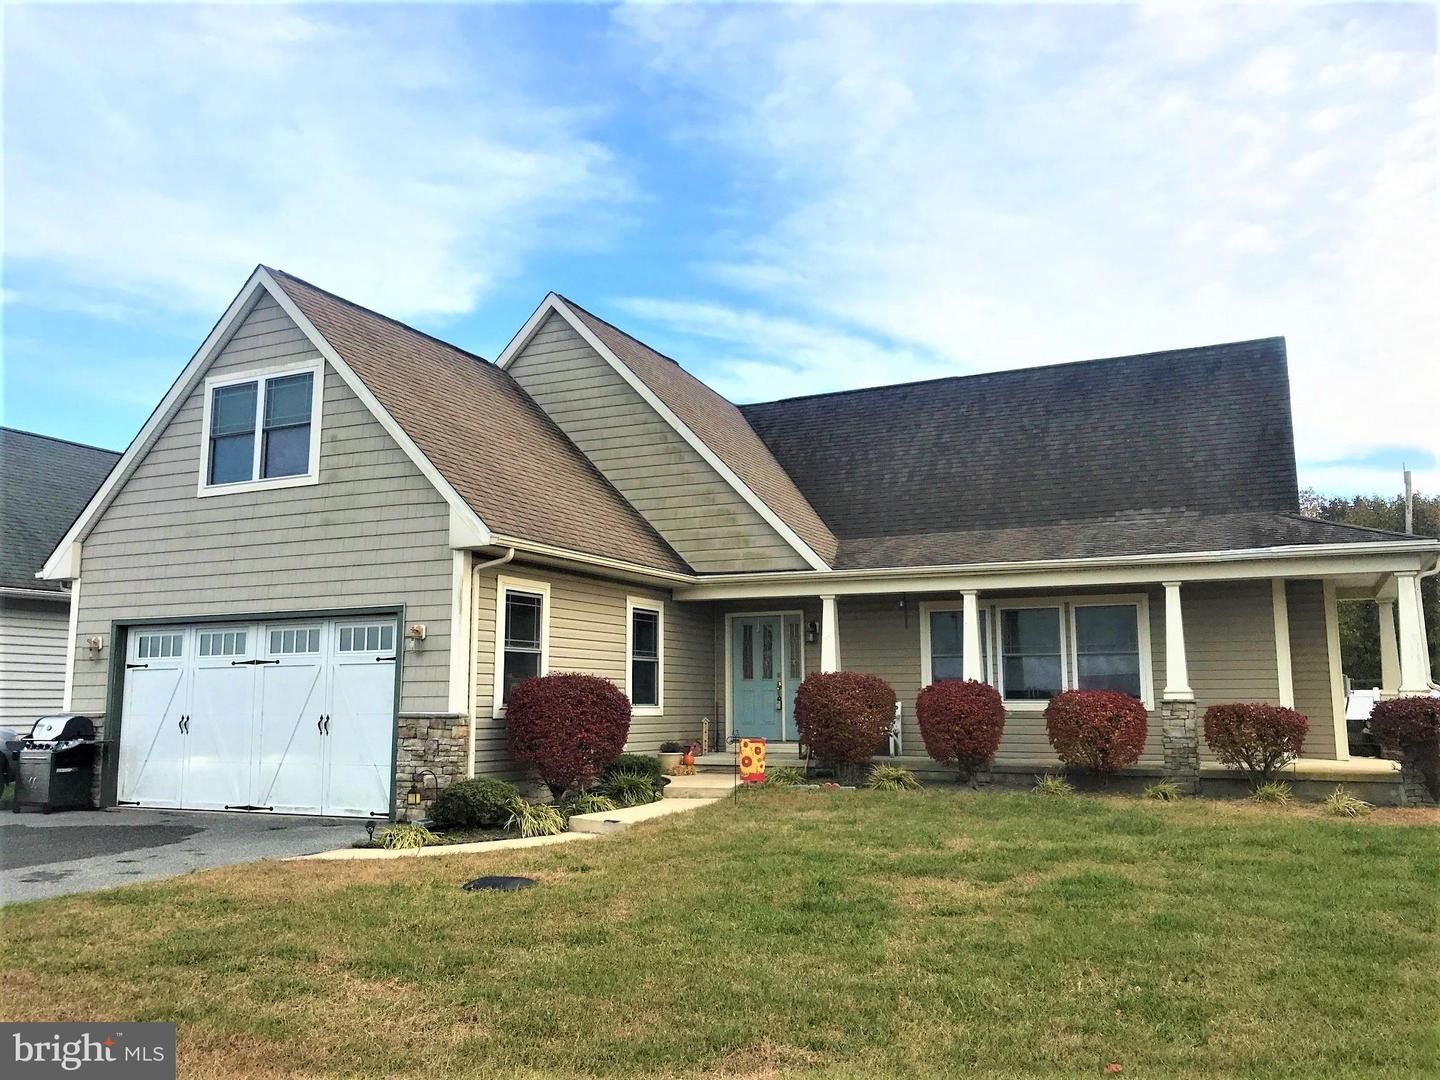 DESU154012-302205315793-2020-01-14-11-31-02 25380 Radish Rd | Millsboro, DE Real Estate For Sale | MLS# Desu154012  - Coldwell Banker Resort Realty